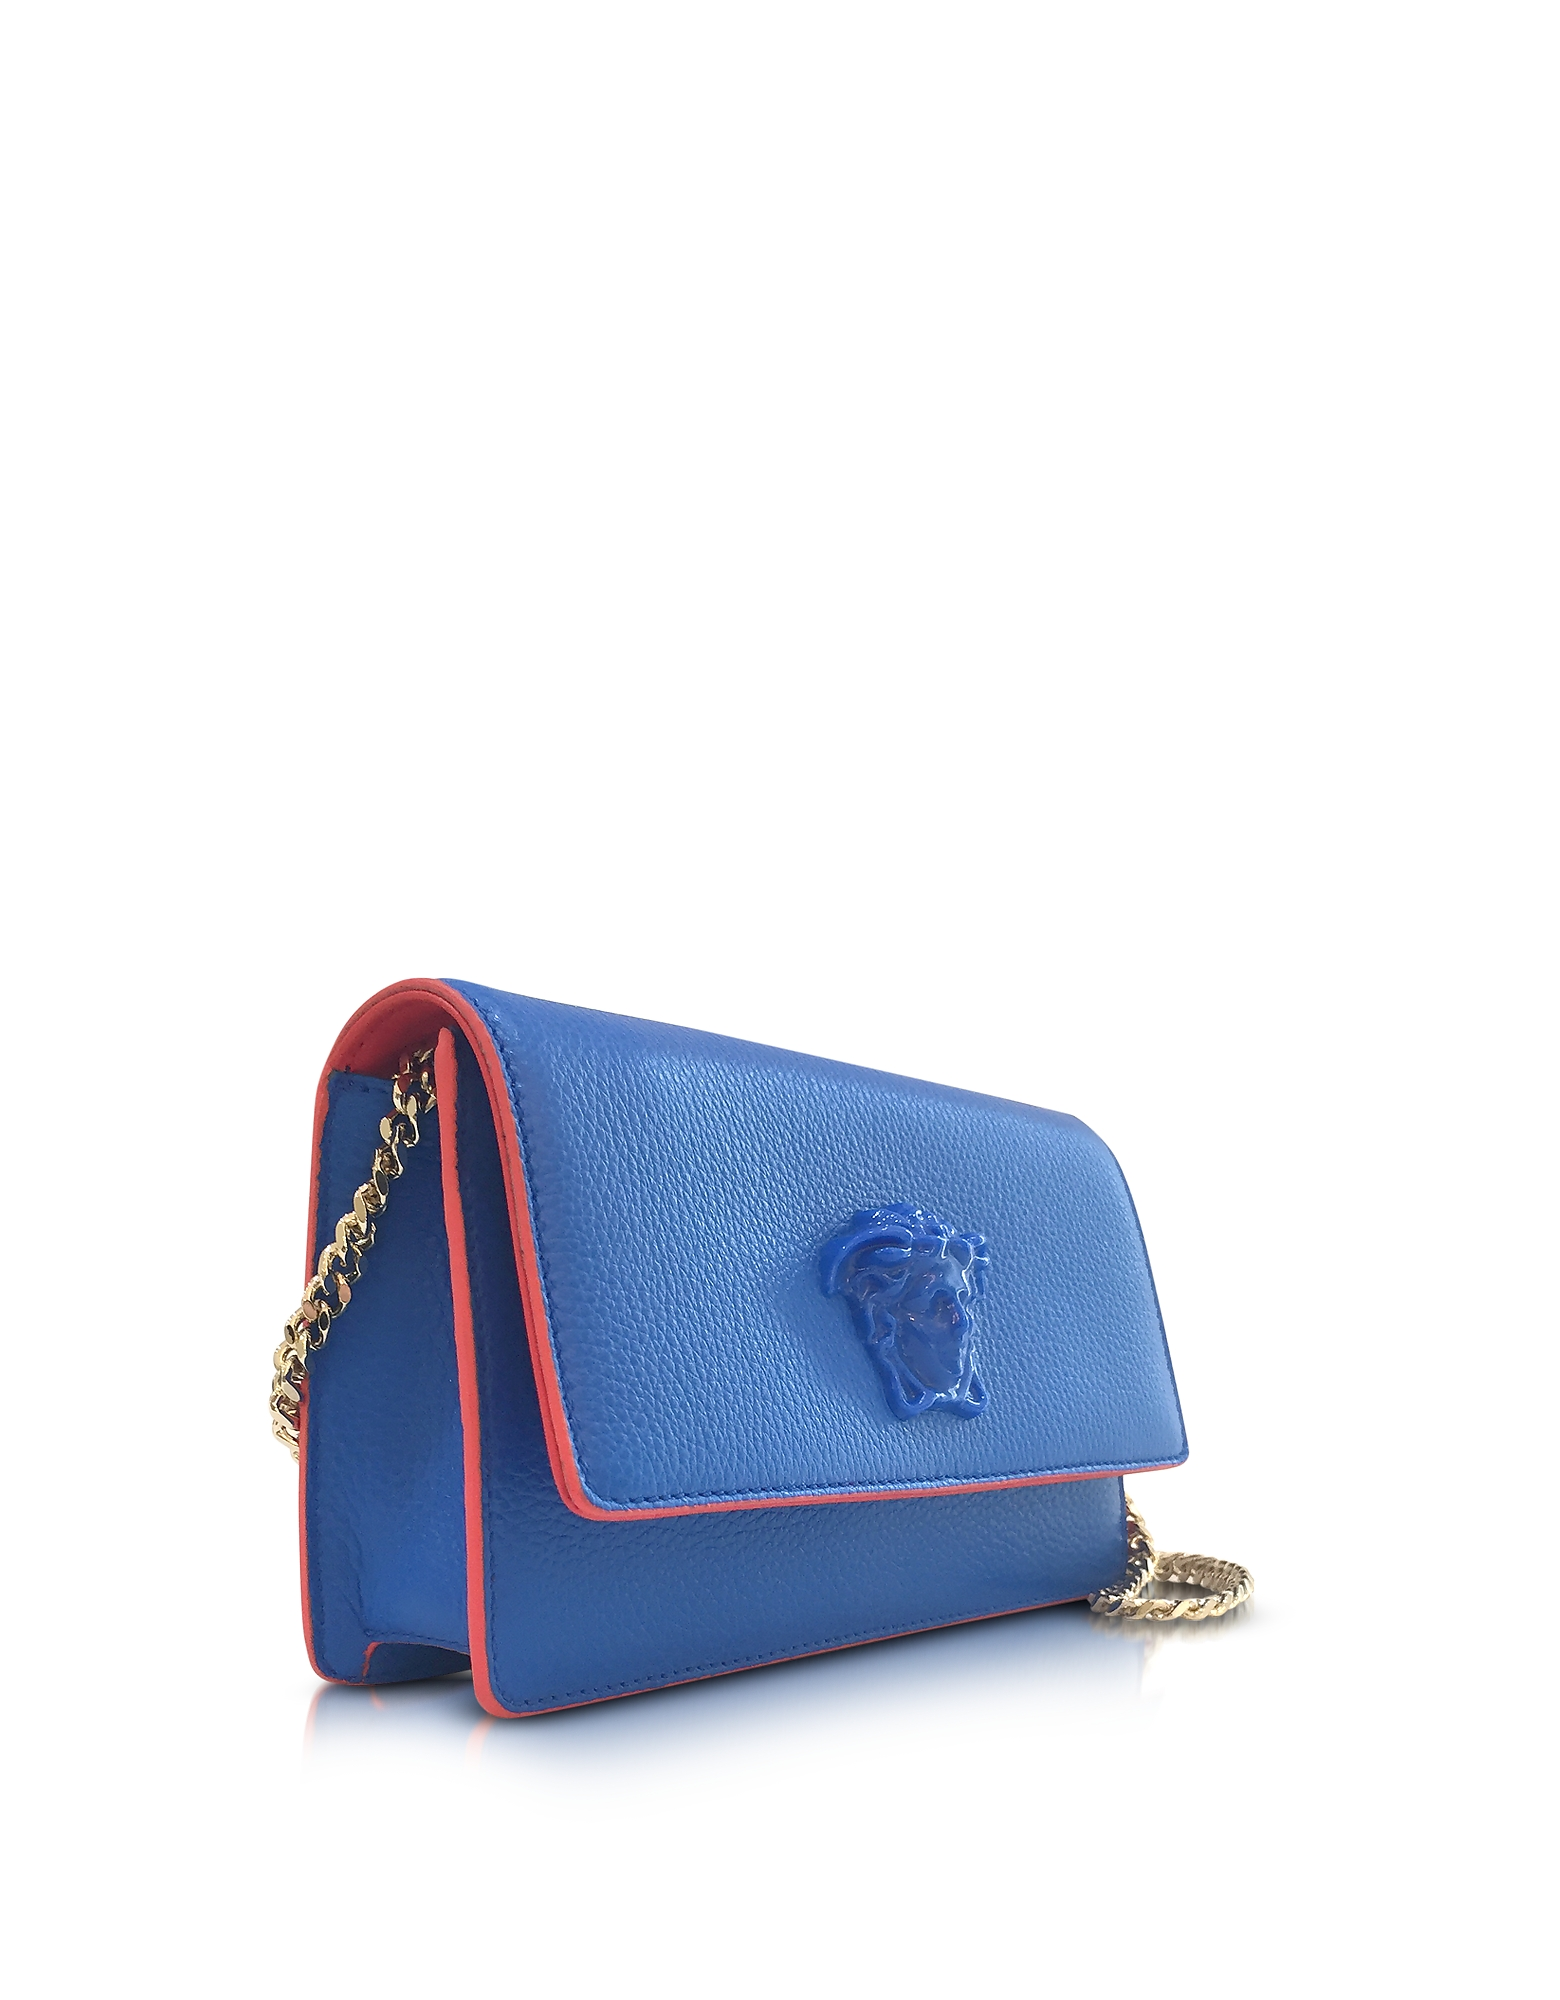 Palazzo Staten Blue Leather Evening Clutch от Forzieri.com INT